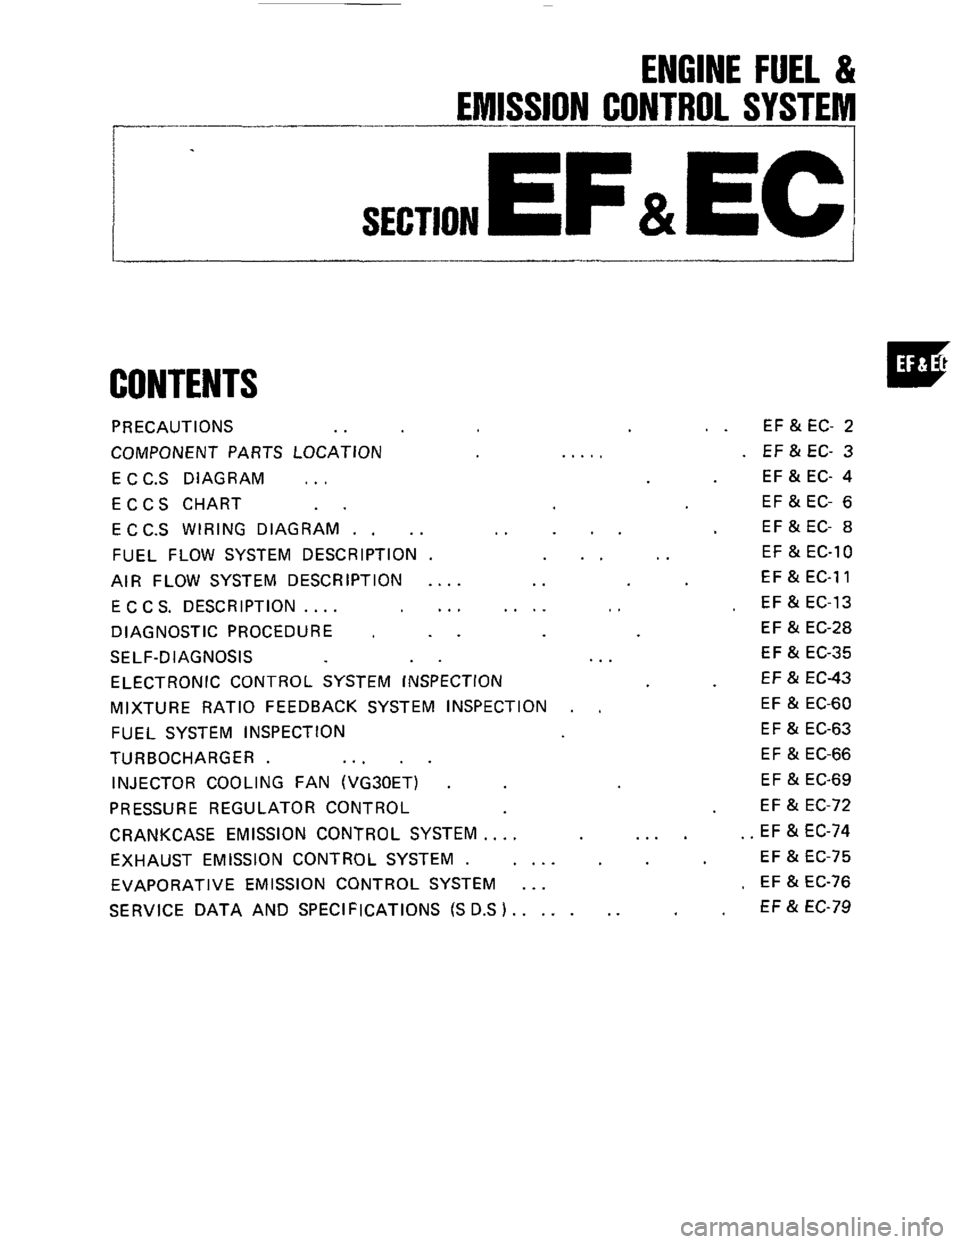 hight resolution of nissan 300zx 1984 z31 engine fuel and emission control system workshop manual